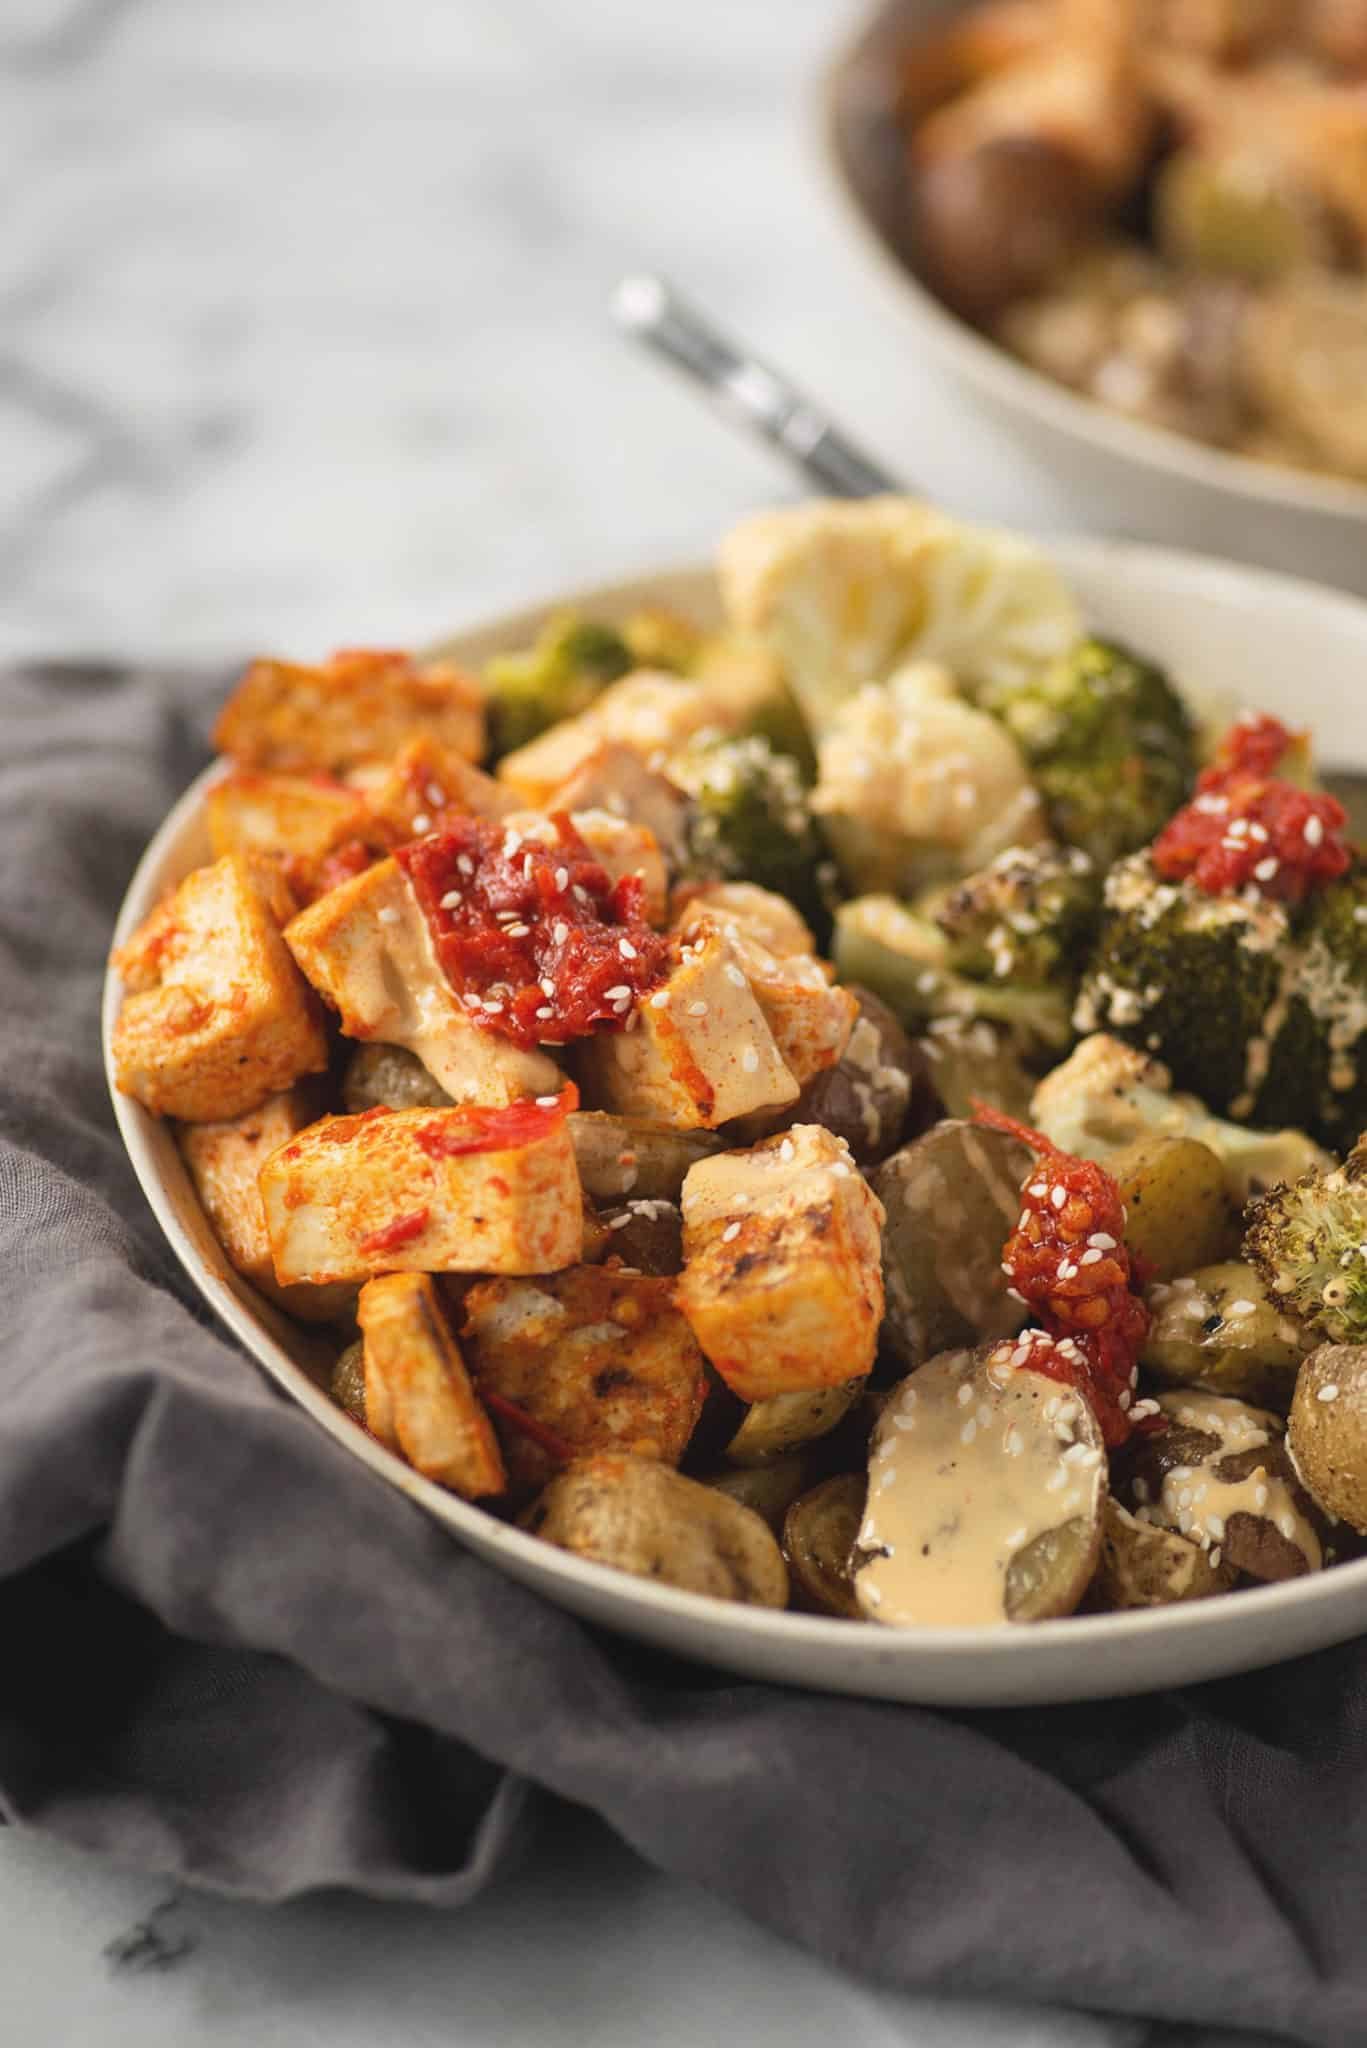 Harissa Tahini Tofu Buddha Bowls! Harissa roasted tofu, roasted potatoes, broccoli and cauliflower covered in a tahini harissa dressing. Grain-free, vegan and gluten-free. | www.delishknowledge.com